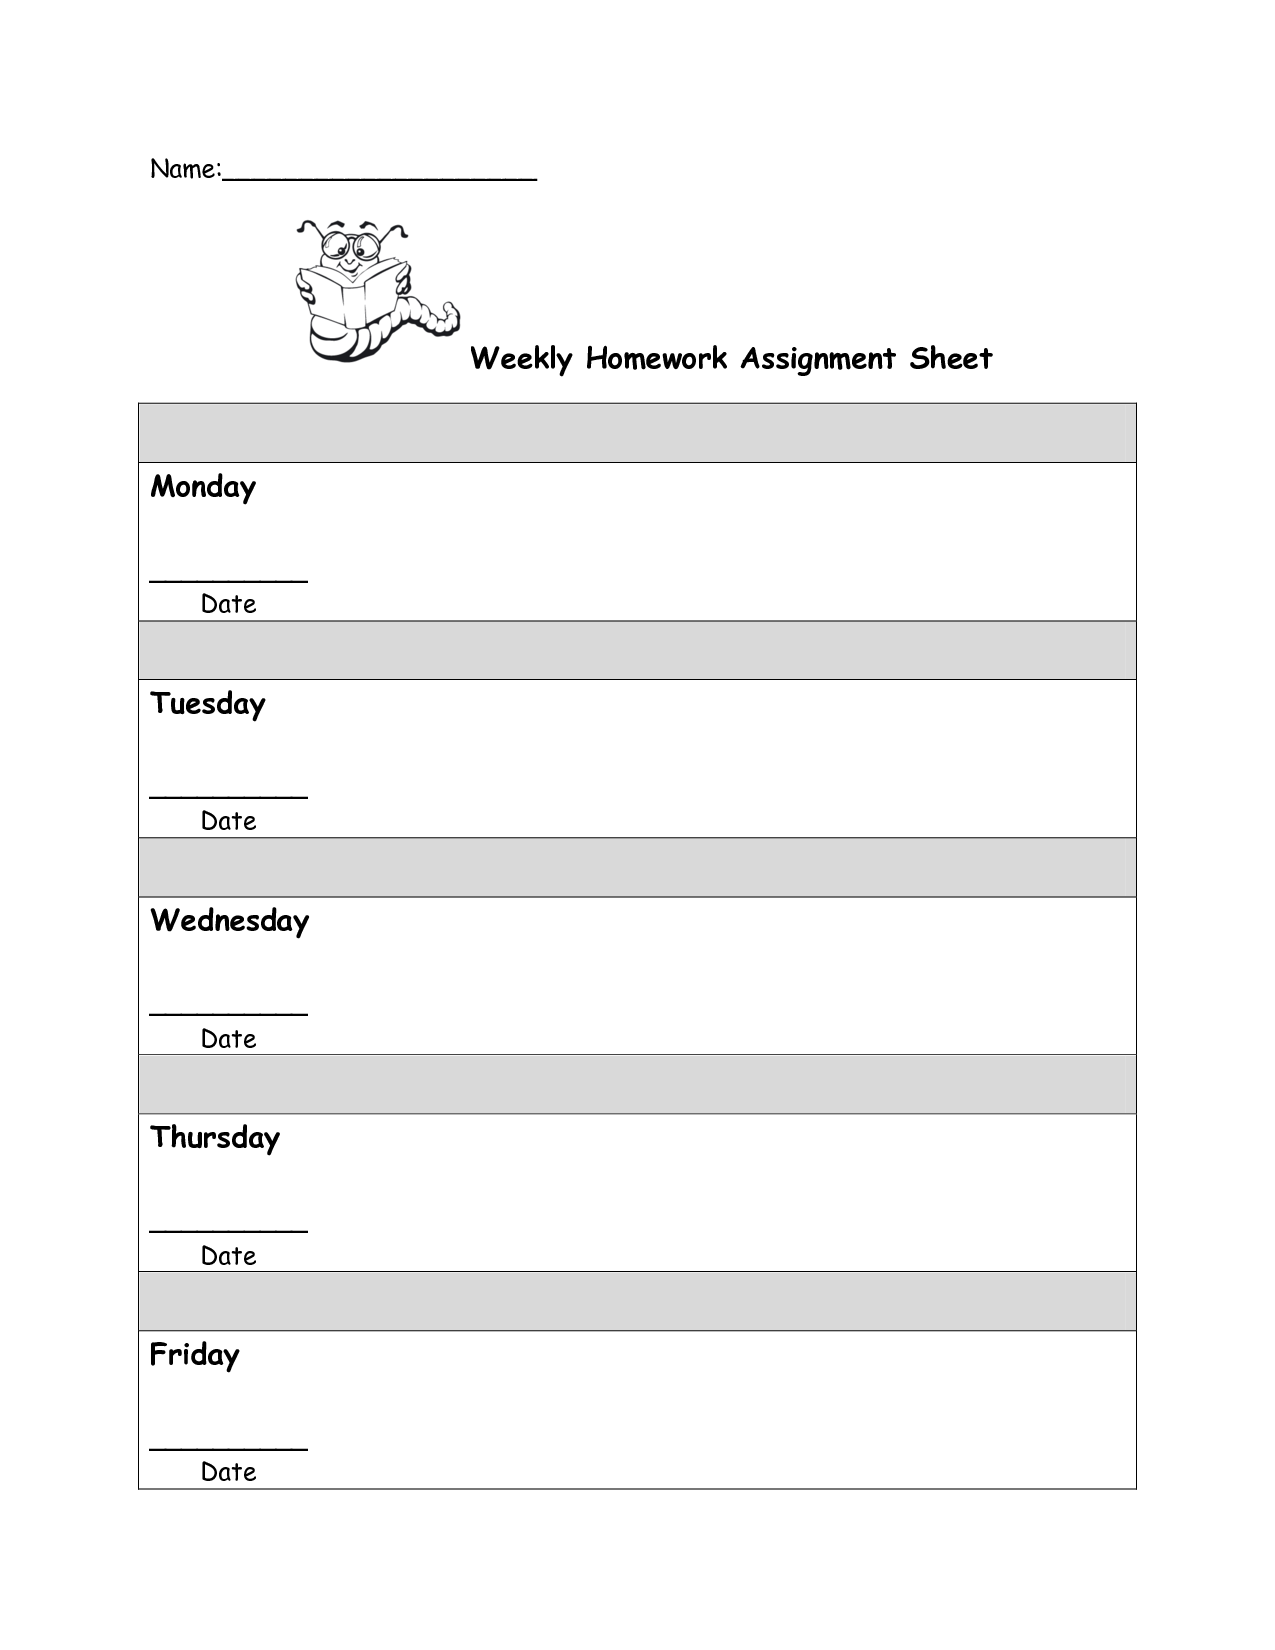 Writing Assignment Sheet Template